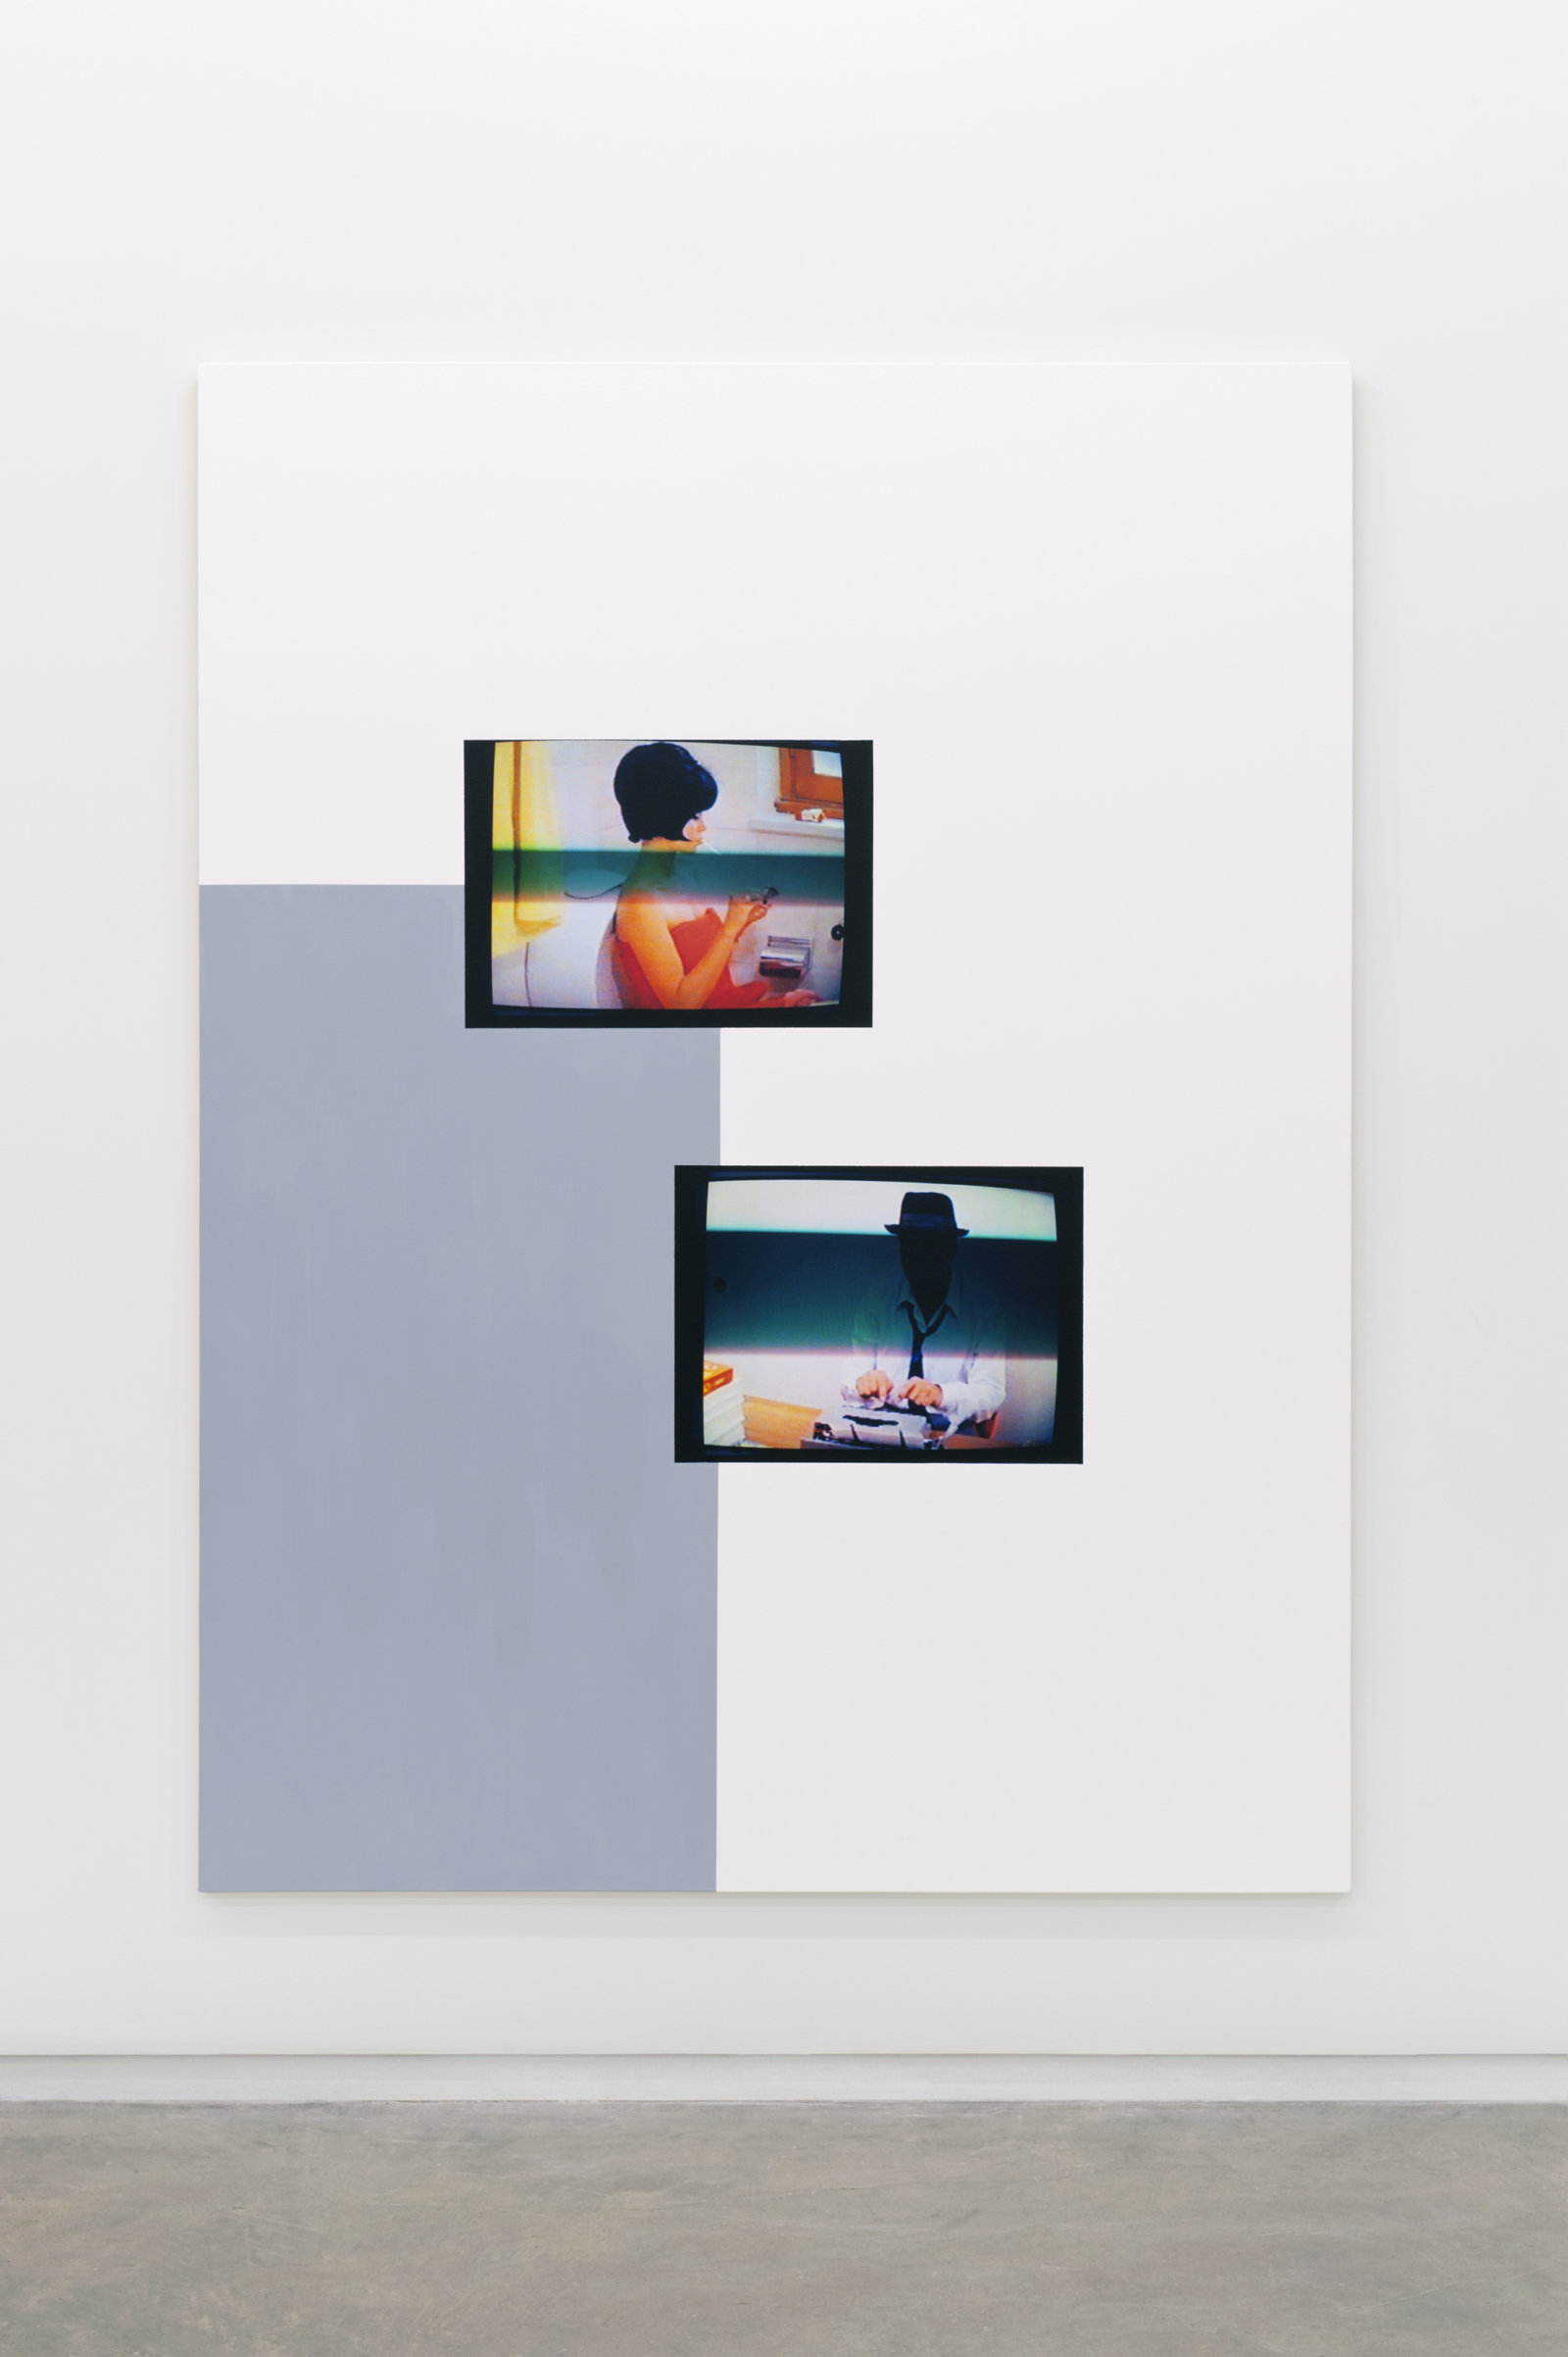 Ian Wallace, Le Mépris (Division In Space), 2010, photolaminate and acrylic on canvas, 96 x 72 in. (244 x 183 cm) by Ian Wallace